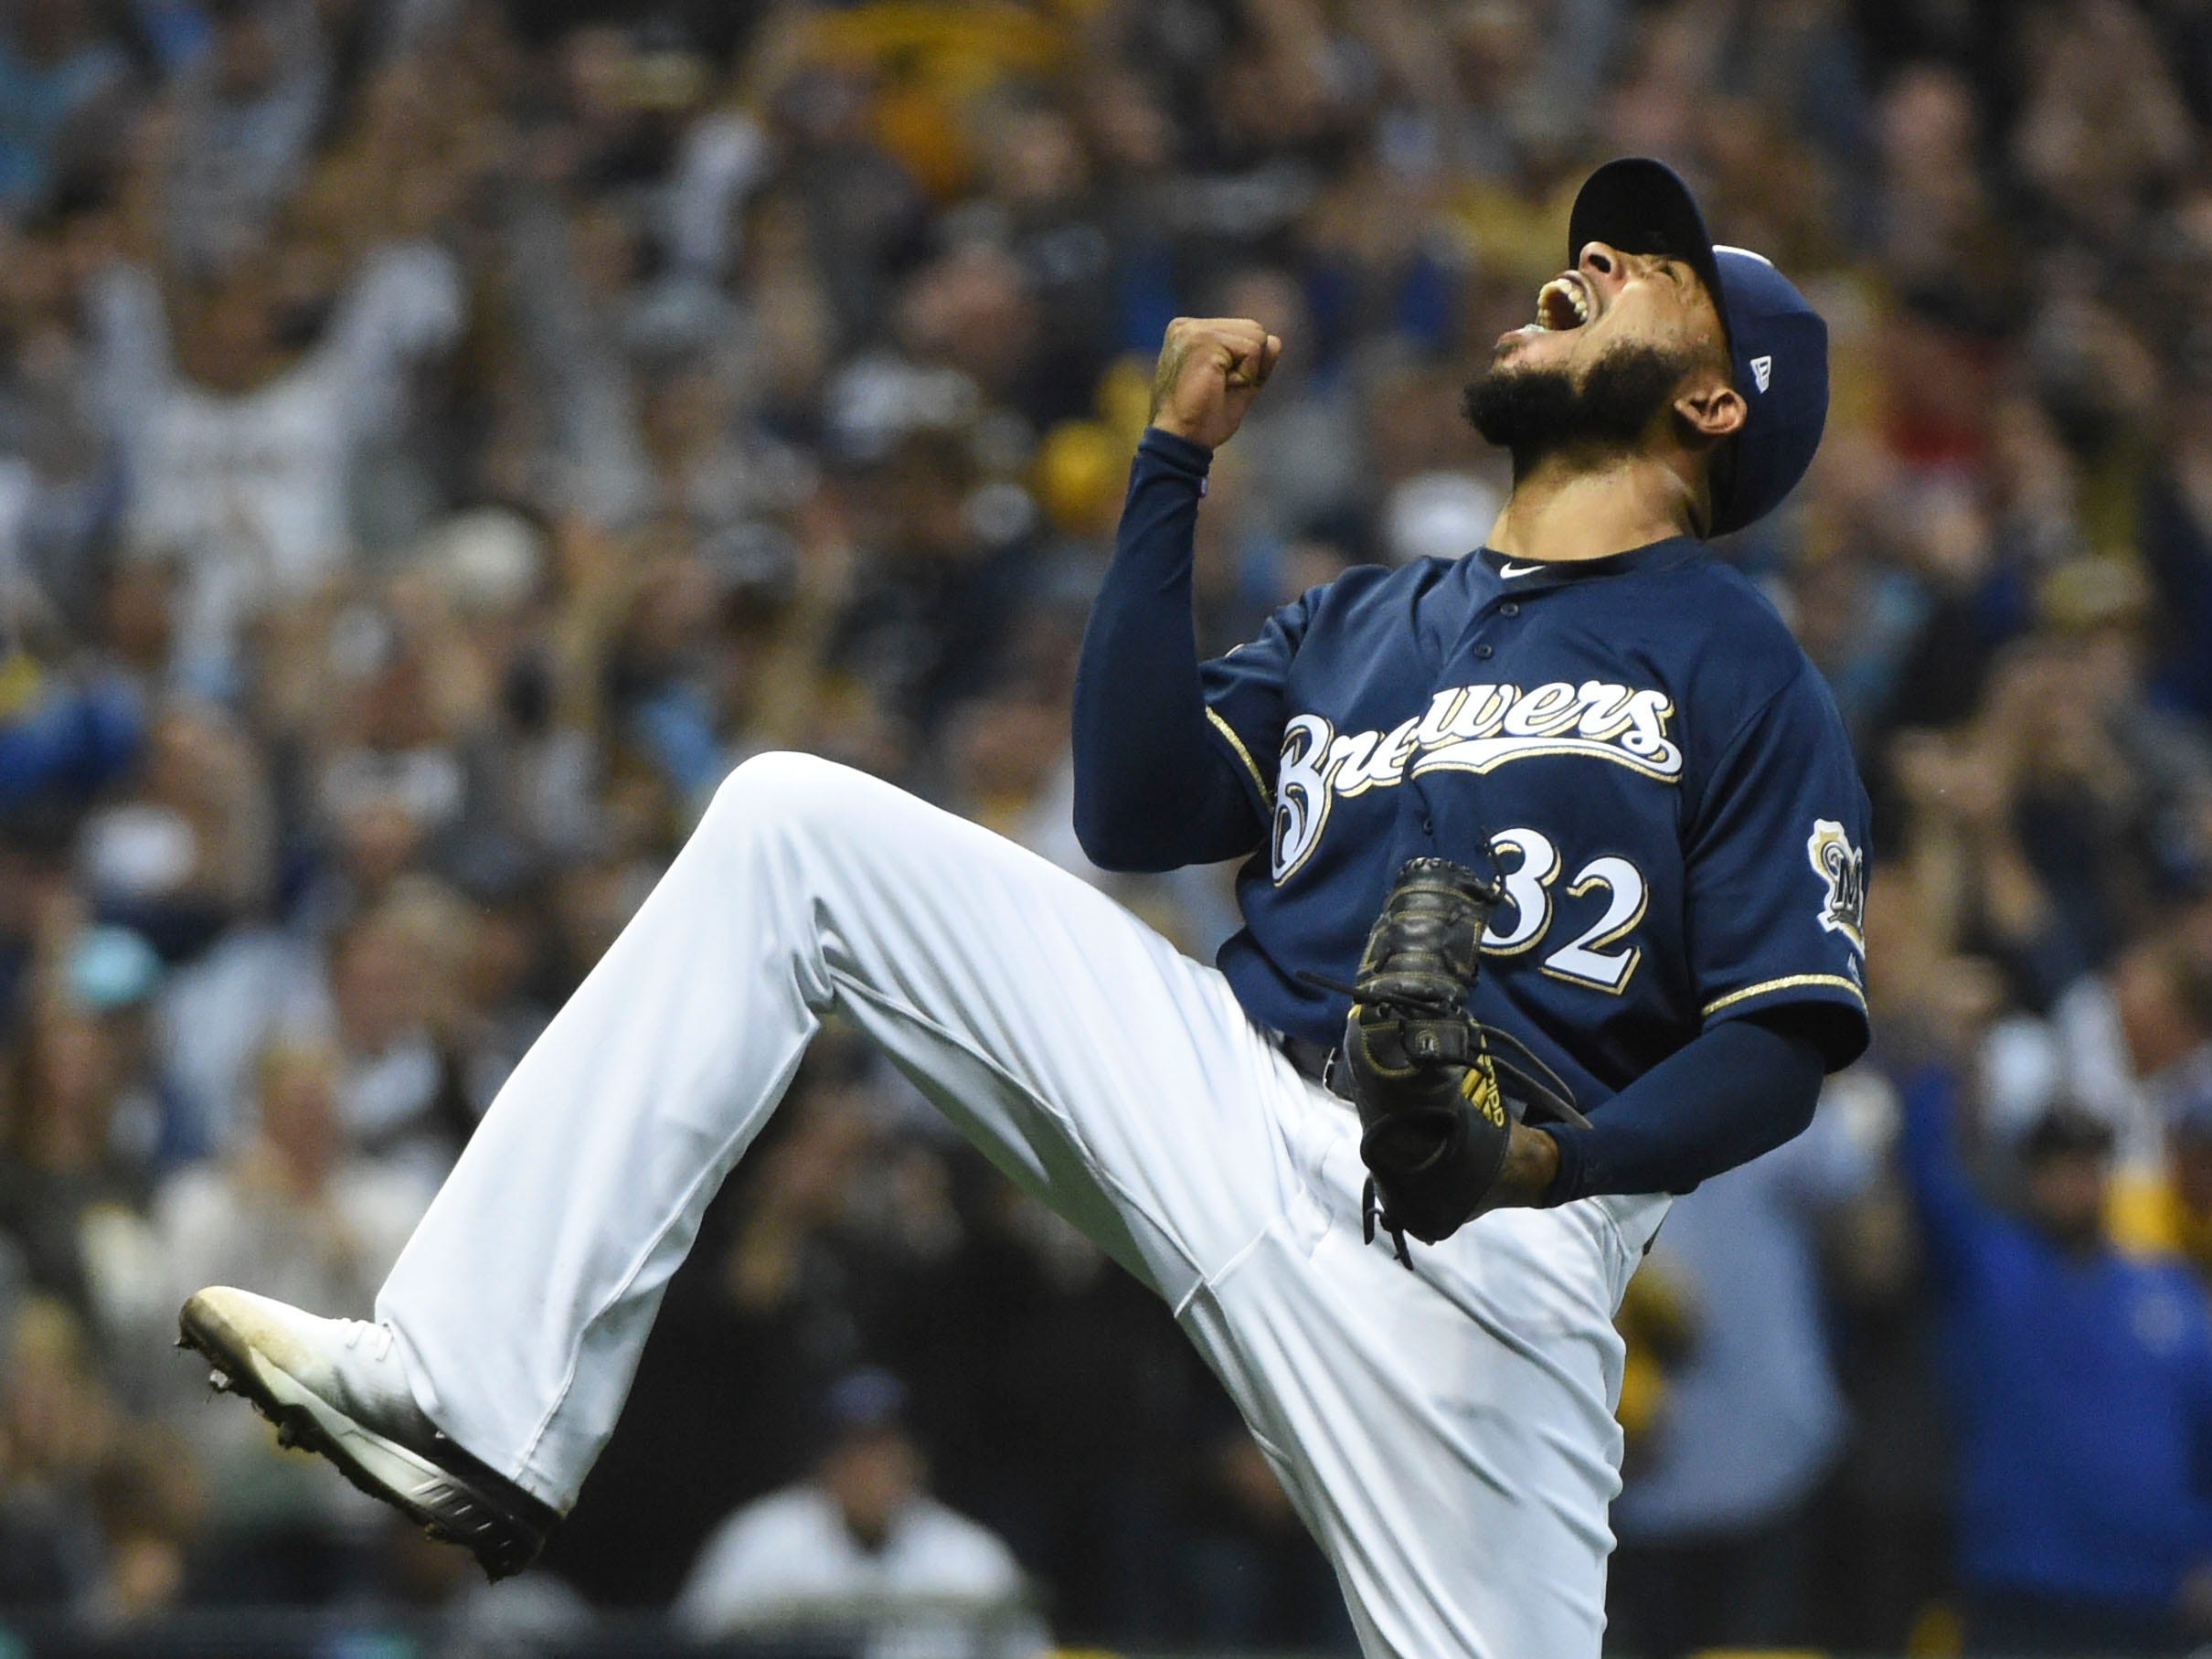 NLDS Game 2: Brewers closer Jeremy Jeffress pumps his fist after defeating the Rockies 4-0.